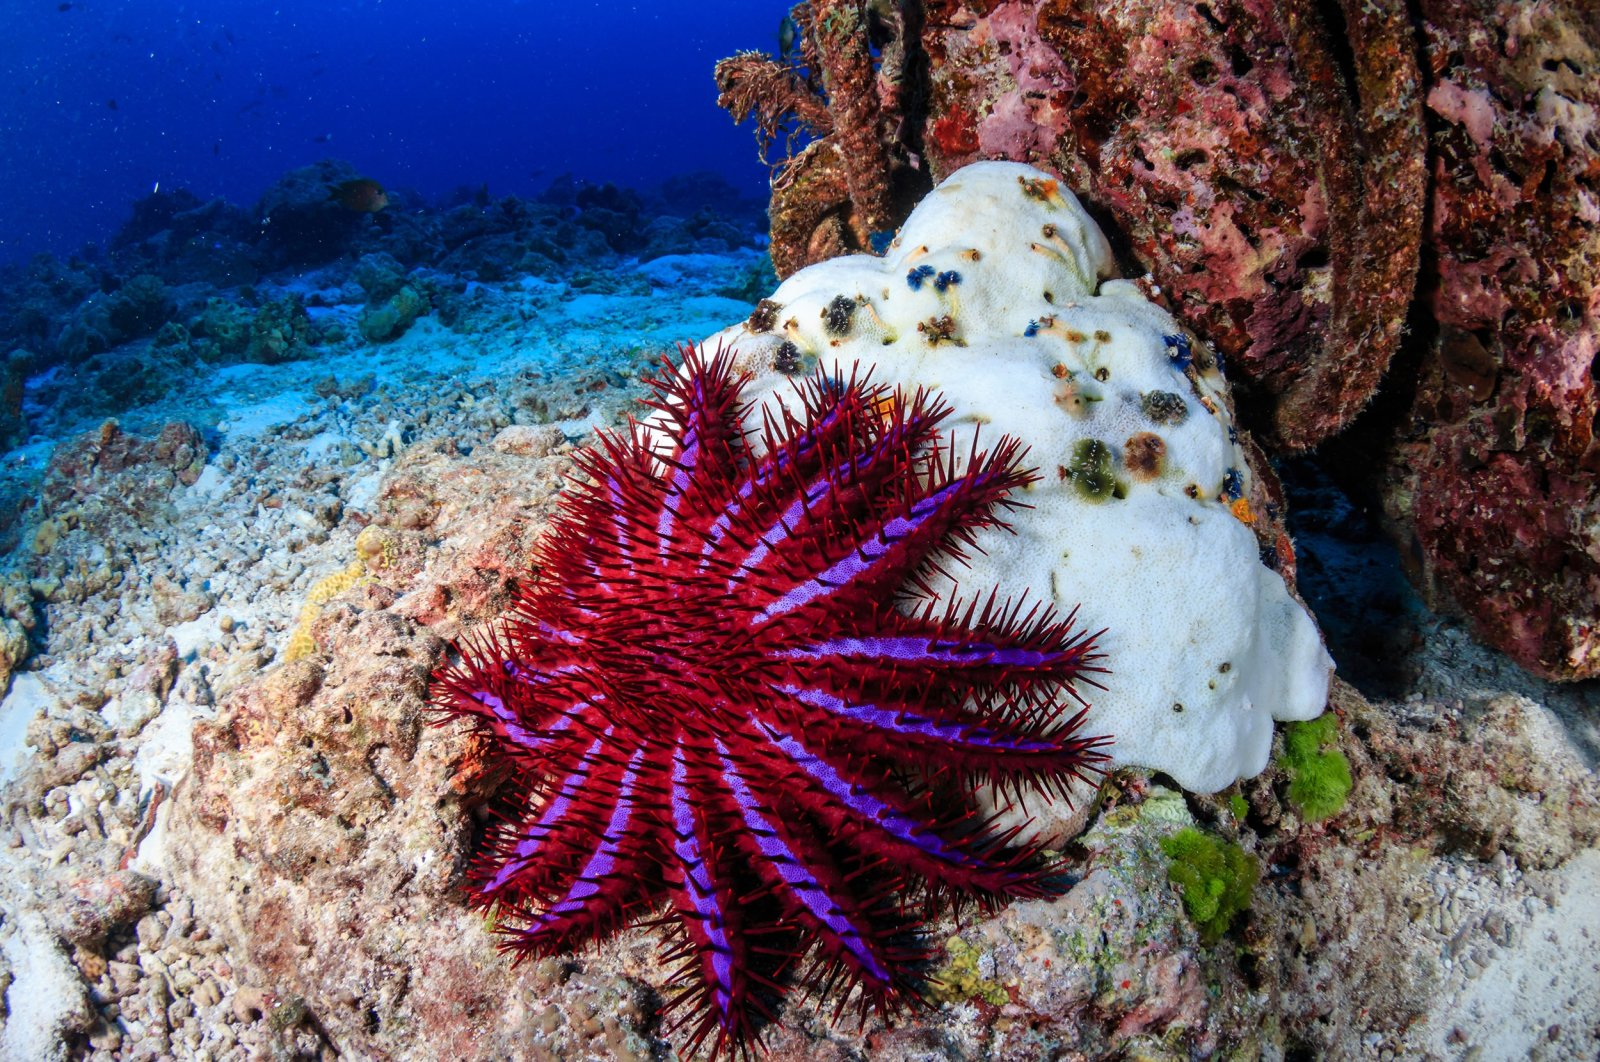 A crown-of-thorns starfish feeding on a bleached, dead hard coral on a tropical reef. (Shutterstock Photo)